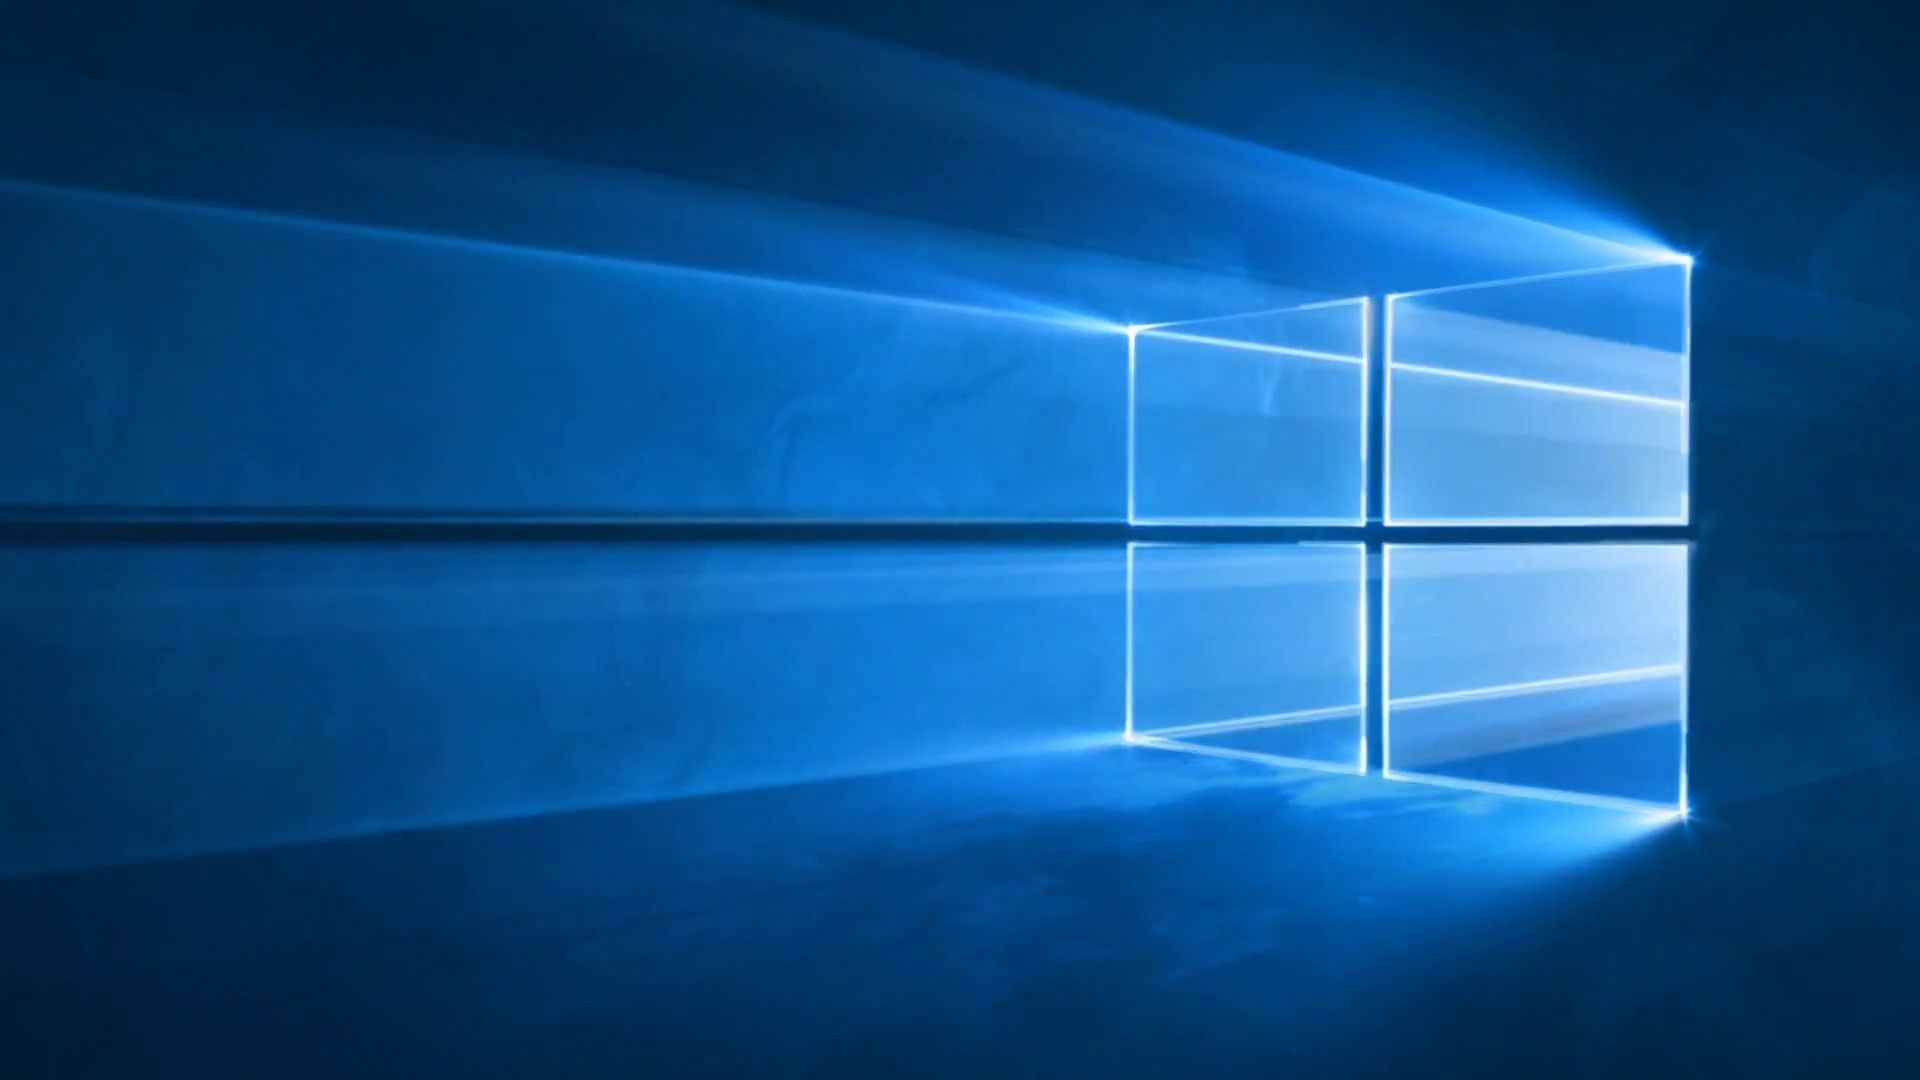 Just A Really Nice Windows 10 Logo Wallpaper Windows 10 Desktop Backgrounds Wallpaper Windows 10 Windows 10